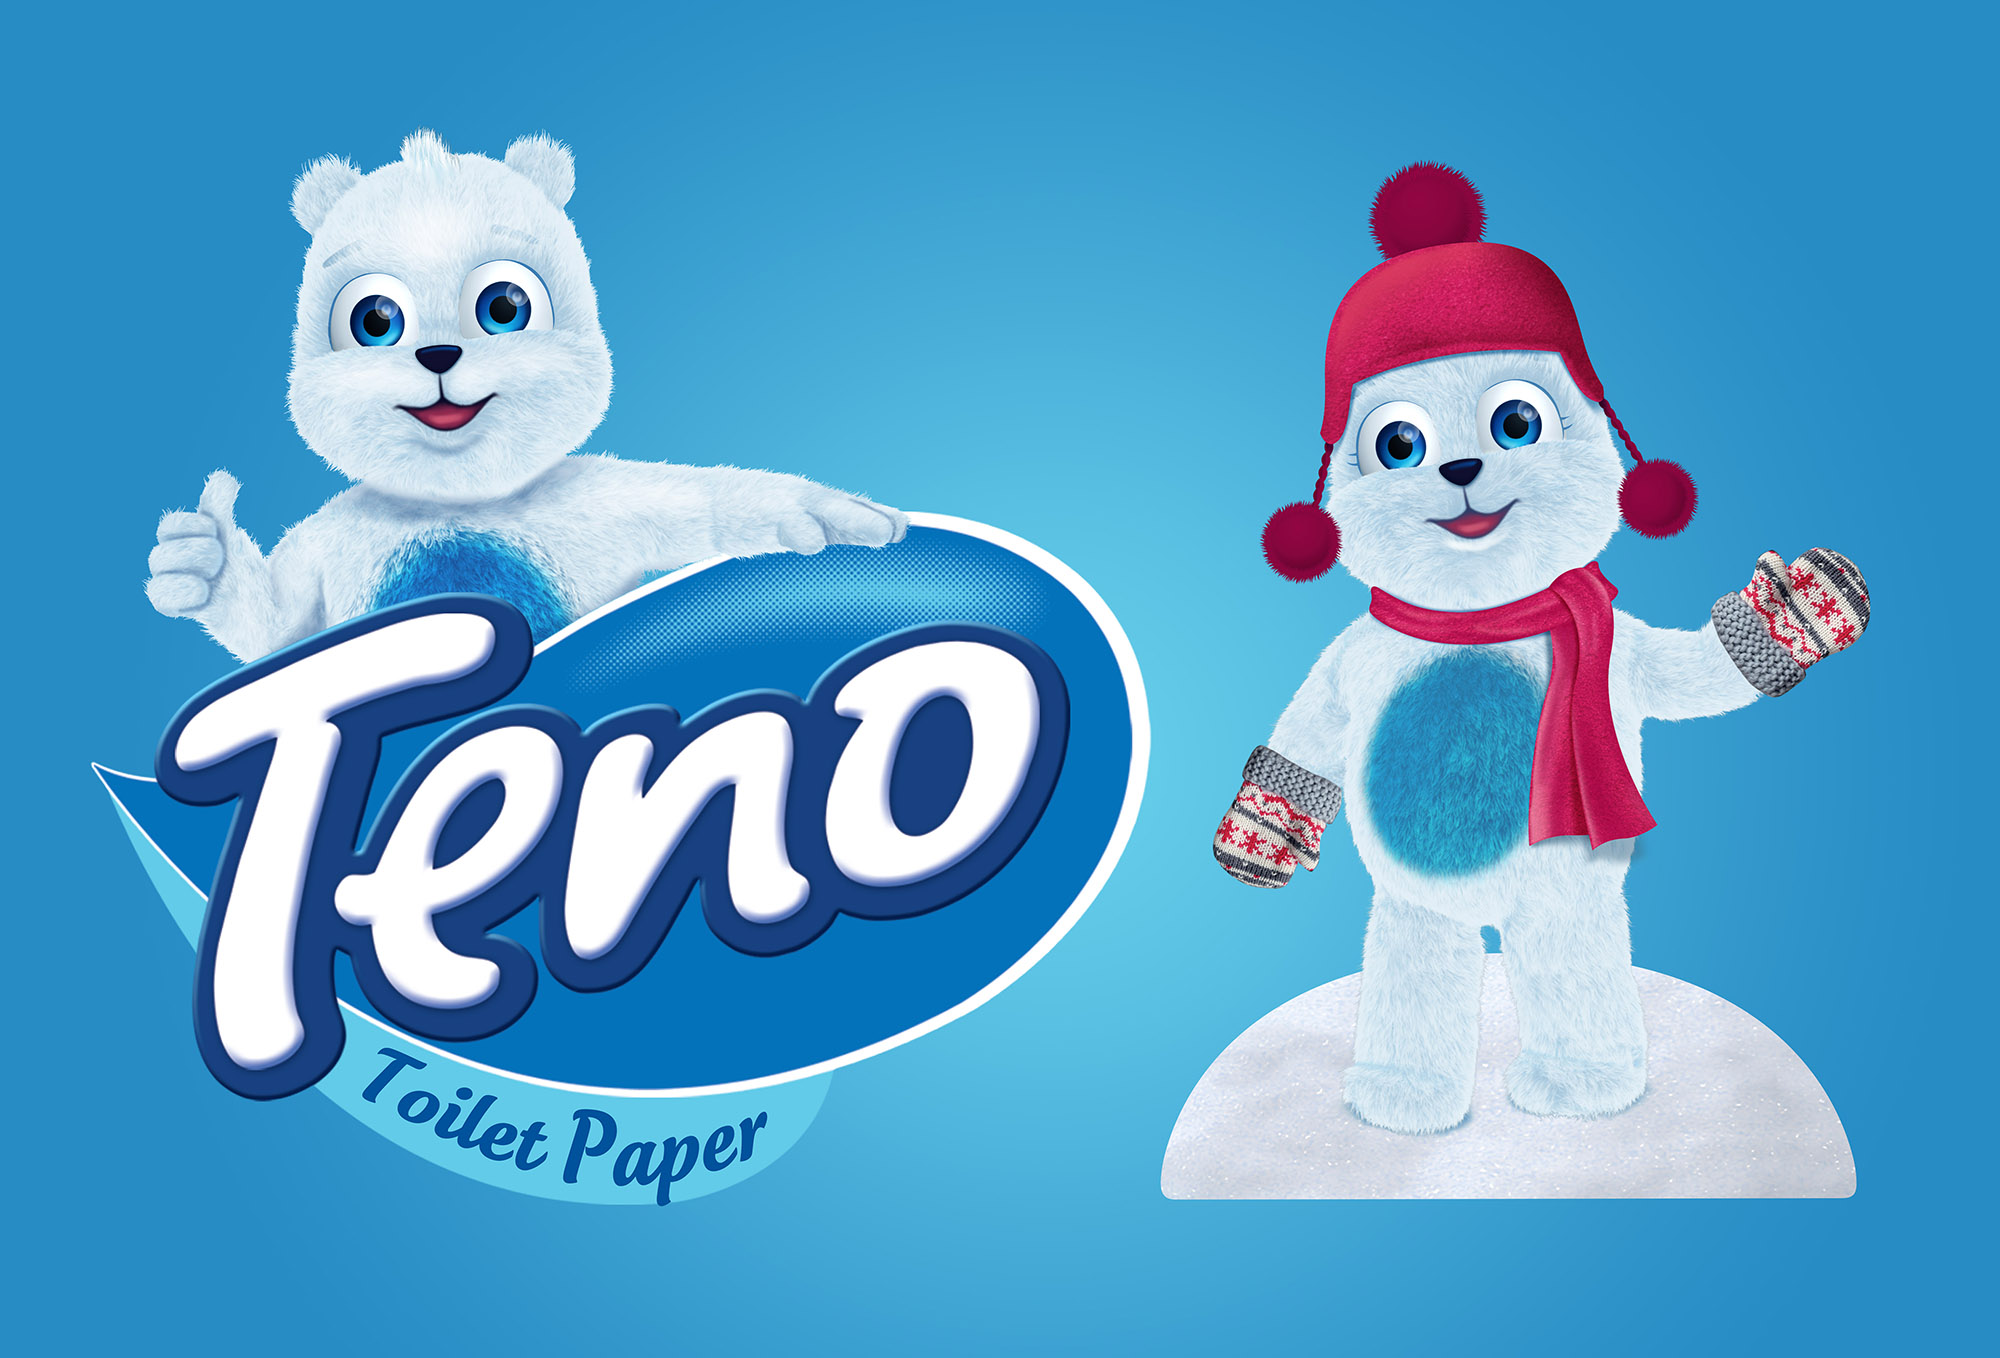 teno toilet paper packaging design